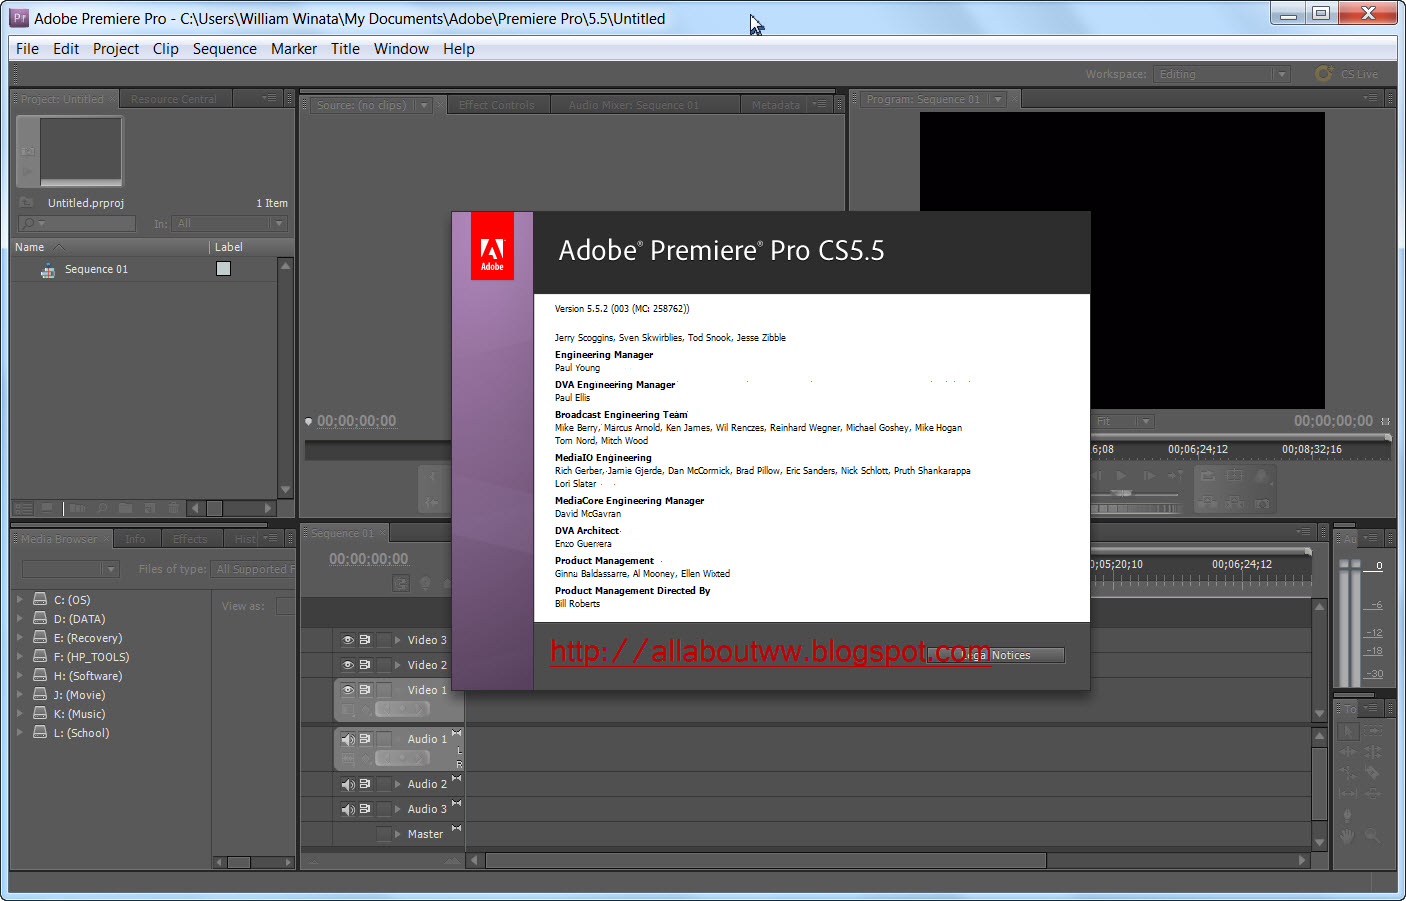 Adobe Premiere Pro Cs5 Keygen Serial Crack #1. adobe premiere pro cs5 5 key